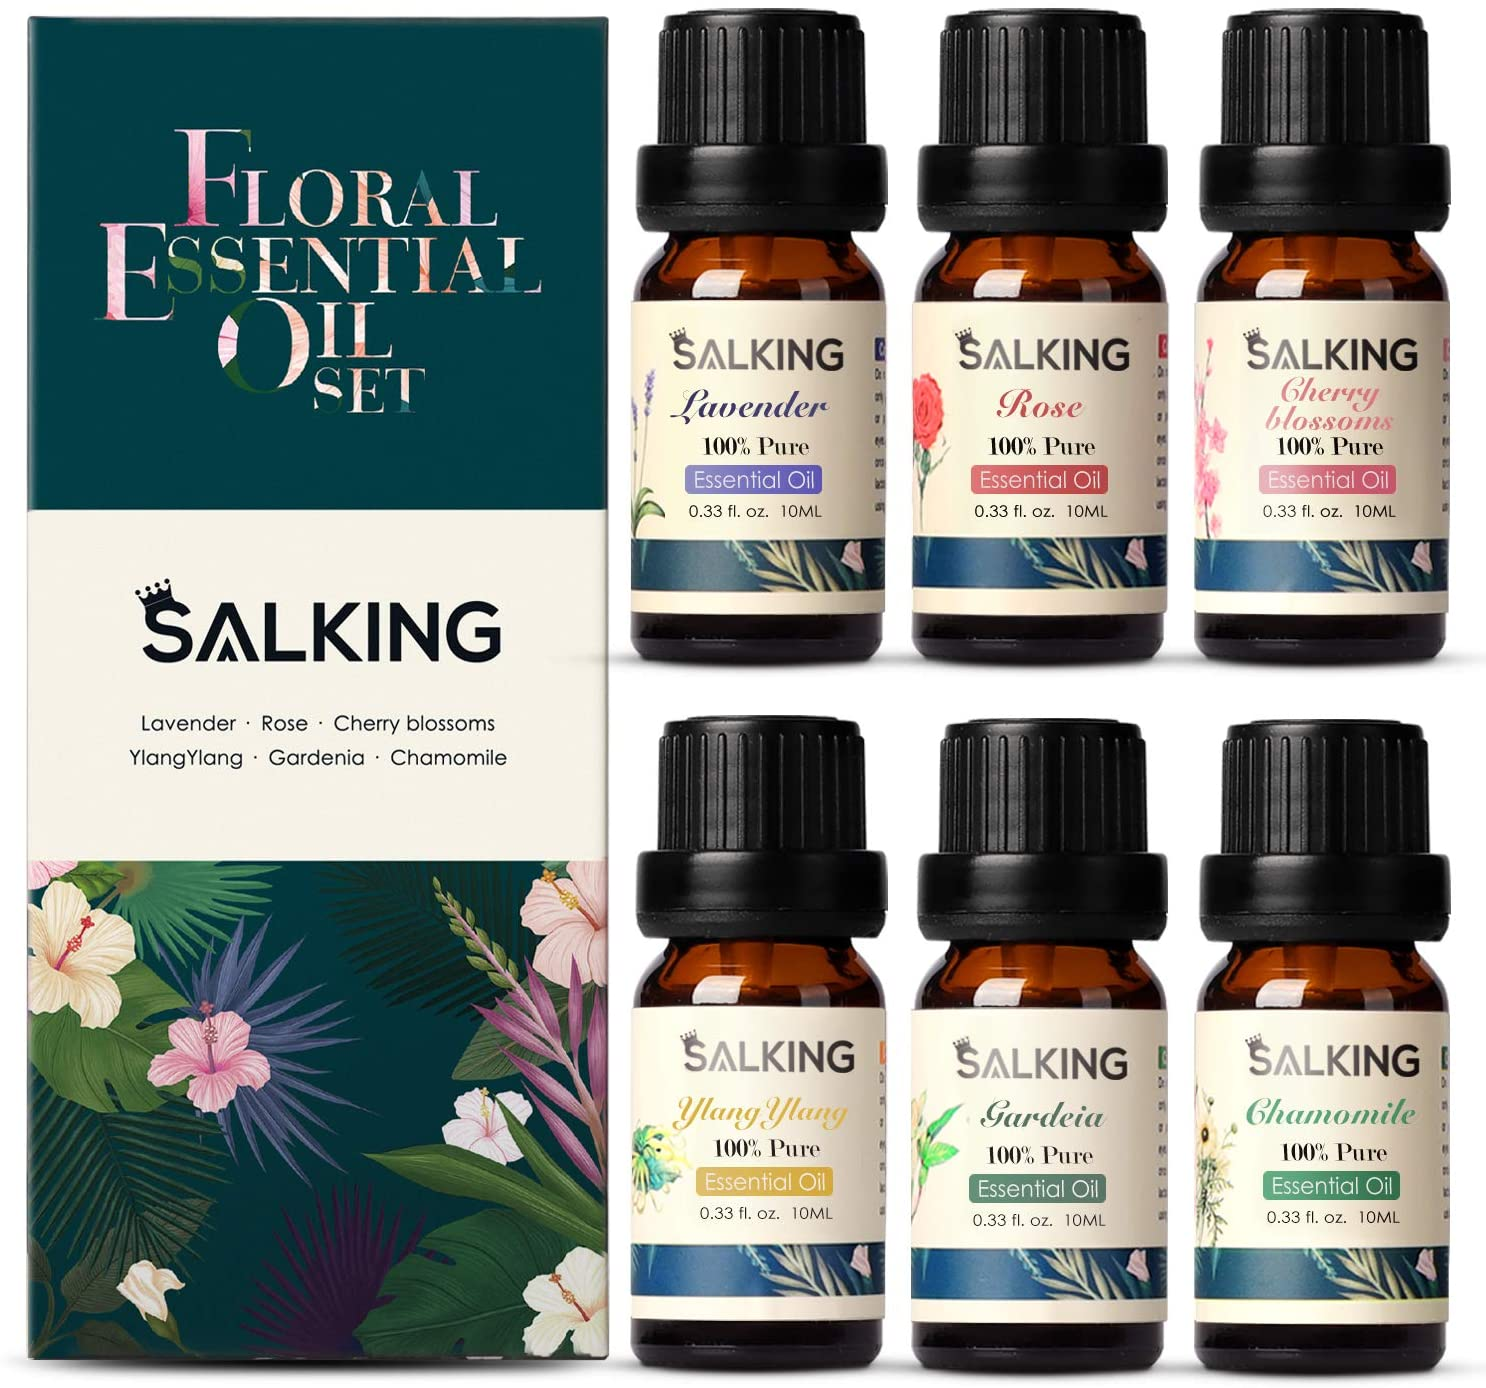 Floral Essential Oils Set, SALKING Pure Floral Collection with Lavender, Rose, Ylang Ylang, Cherry Blossom, Chamomile, Gardenia Essential Oils for Diffusers, Aromatherapy, Massage, 6x10ML